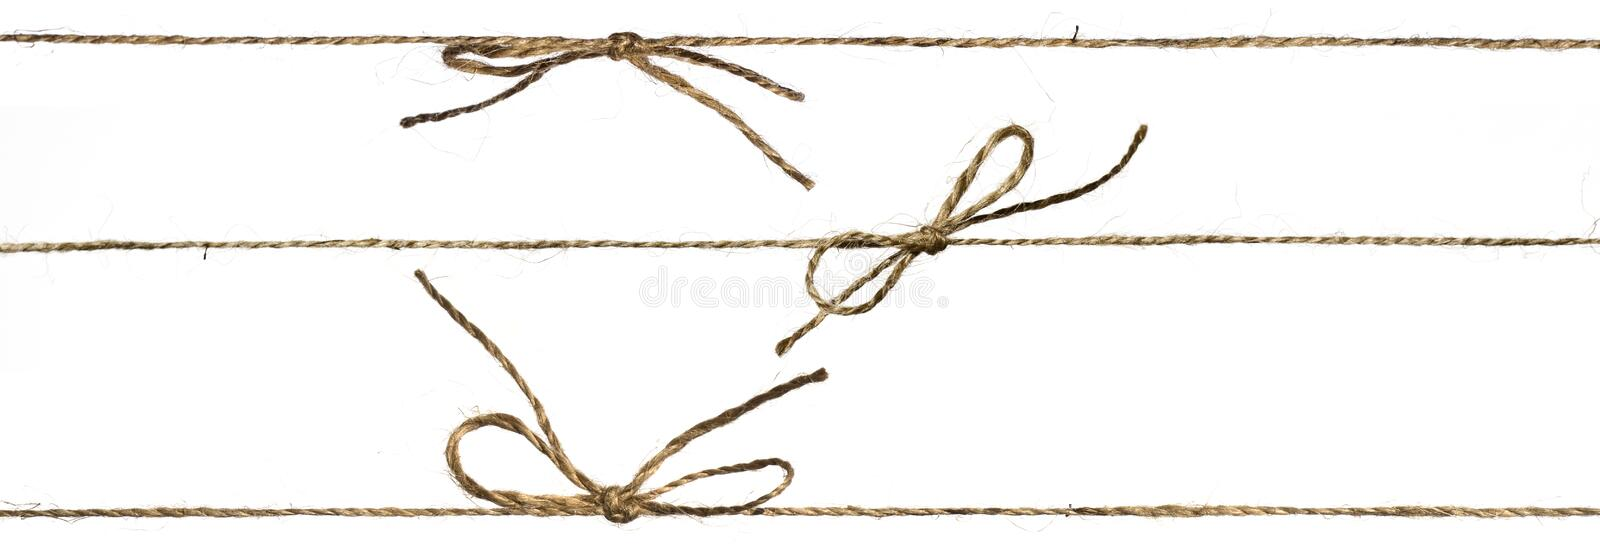 Set of three different string or braided twine tied stock photography